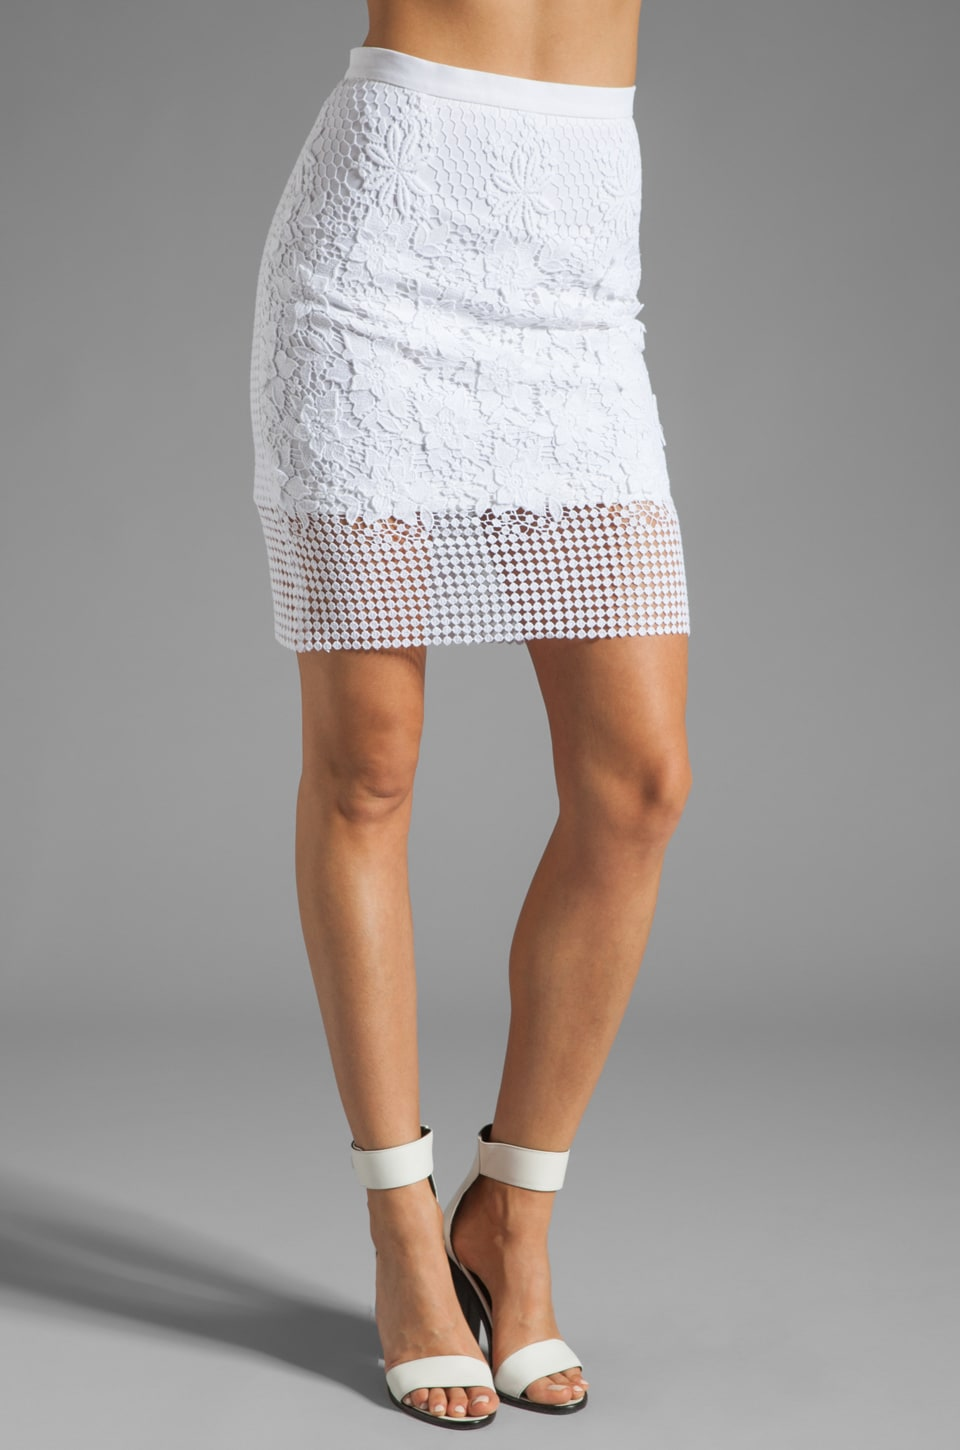 Tibi Basia Lace Pencil Skirt in White